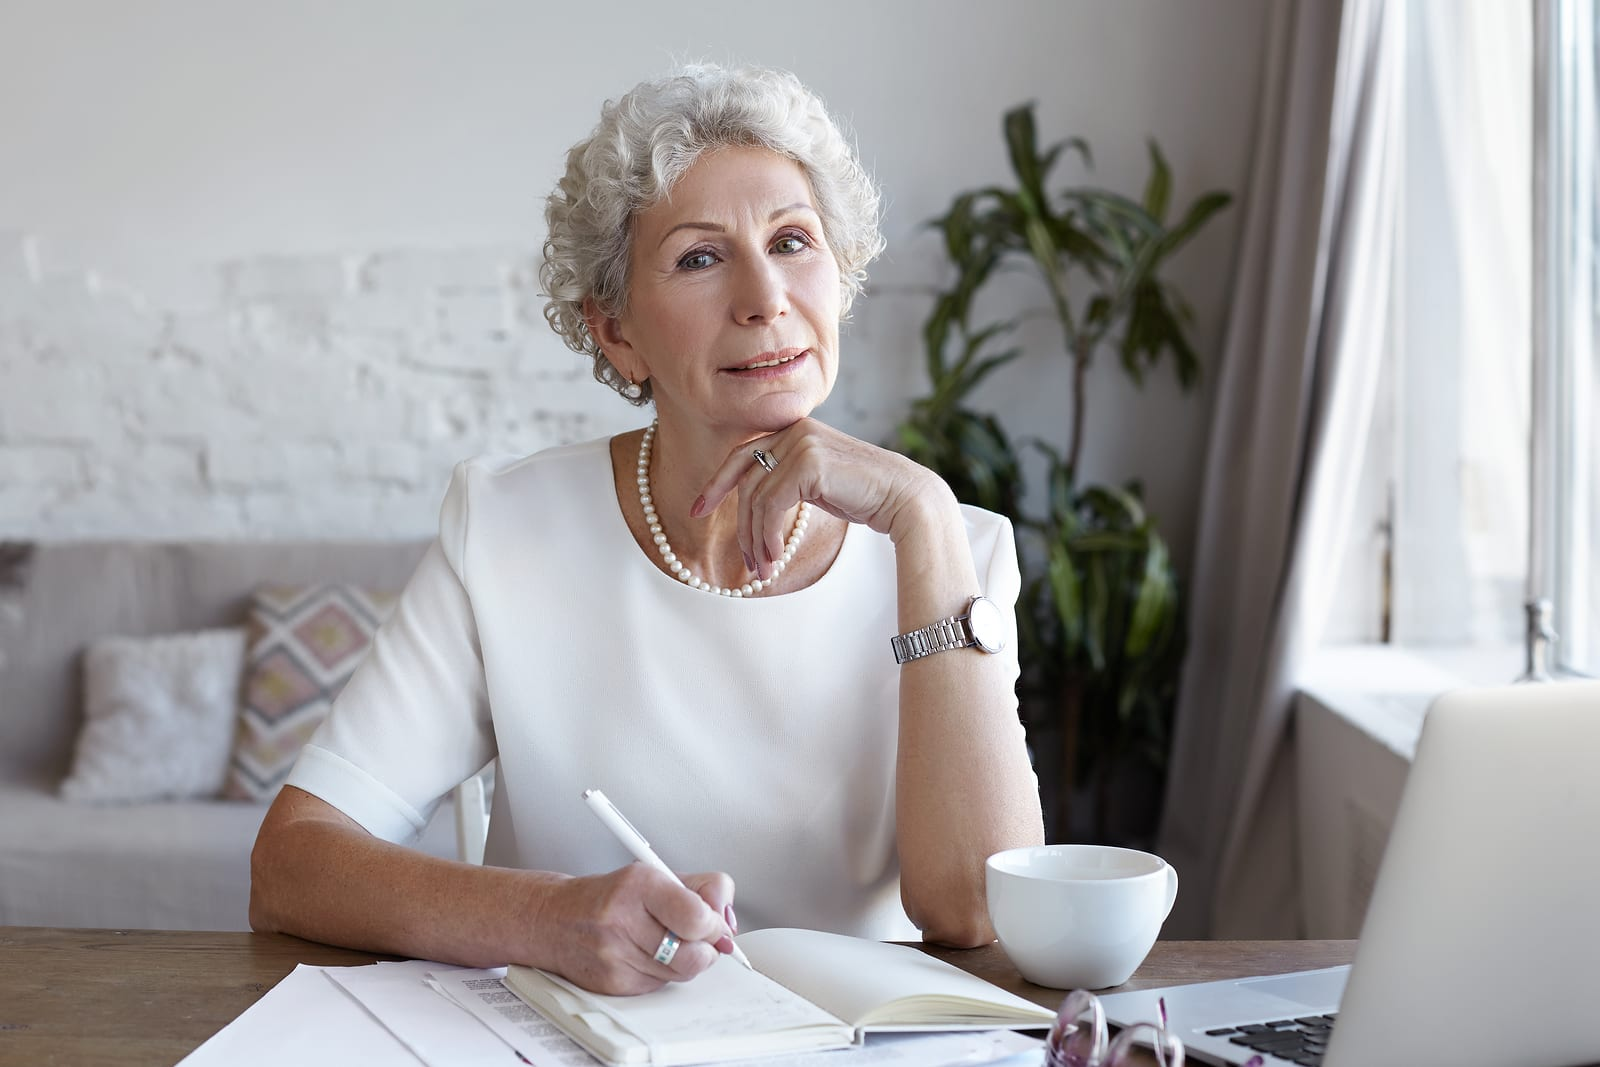 Senior people, modern lifestyle, technologies, job and occupation concept. Mature woman writer with short gray hair using wifi on laptop computer and making notes in copybook, working on new article